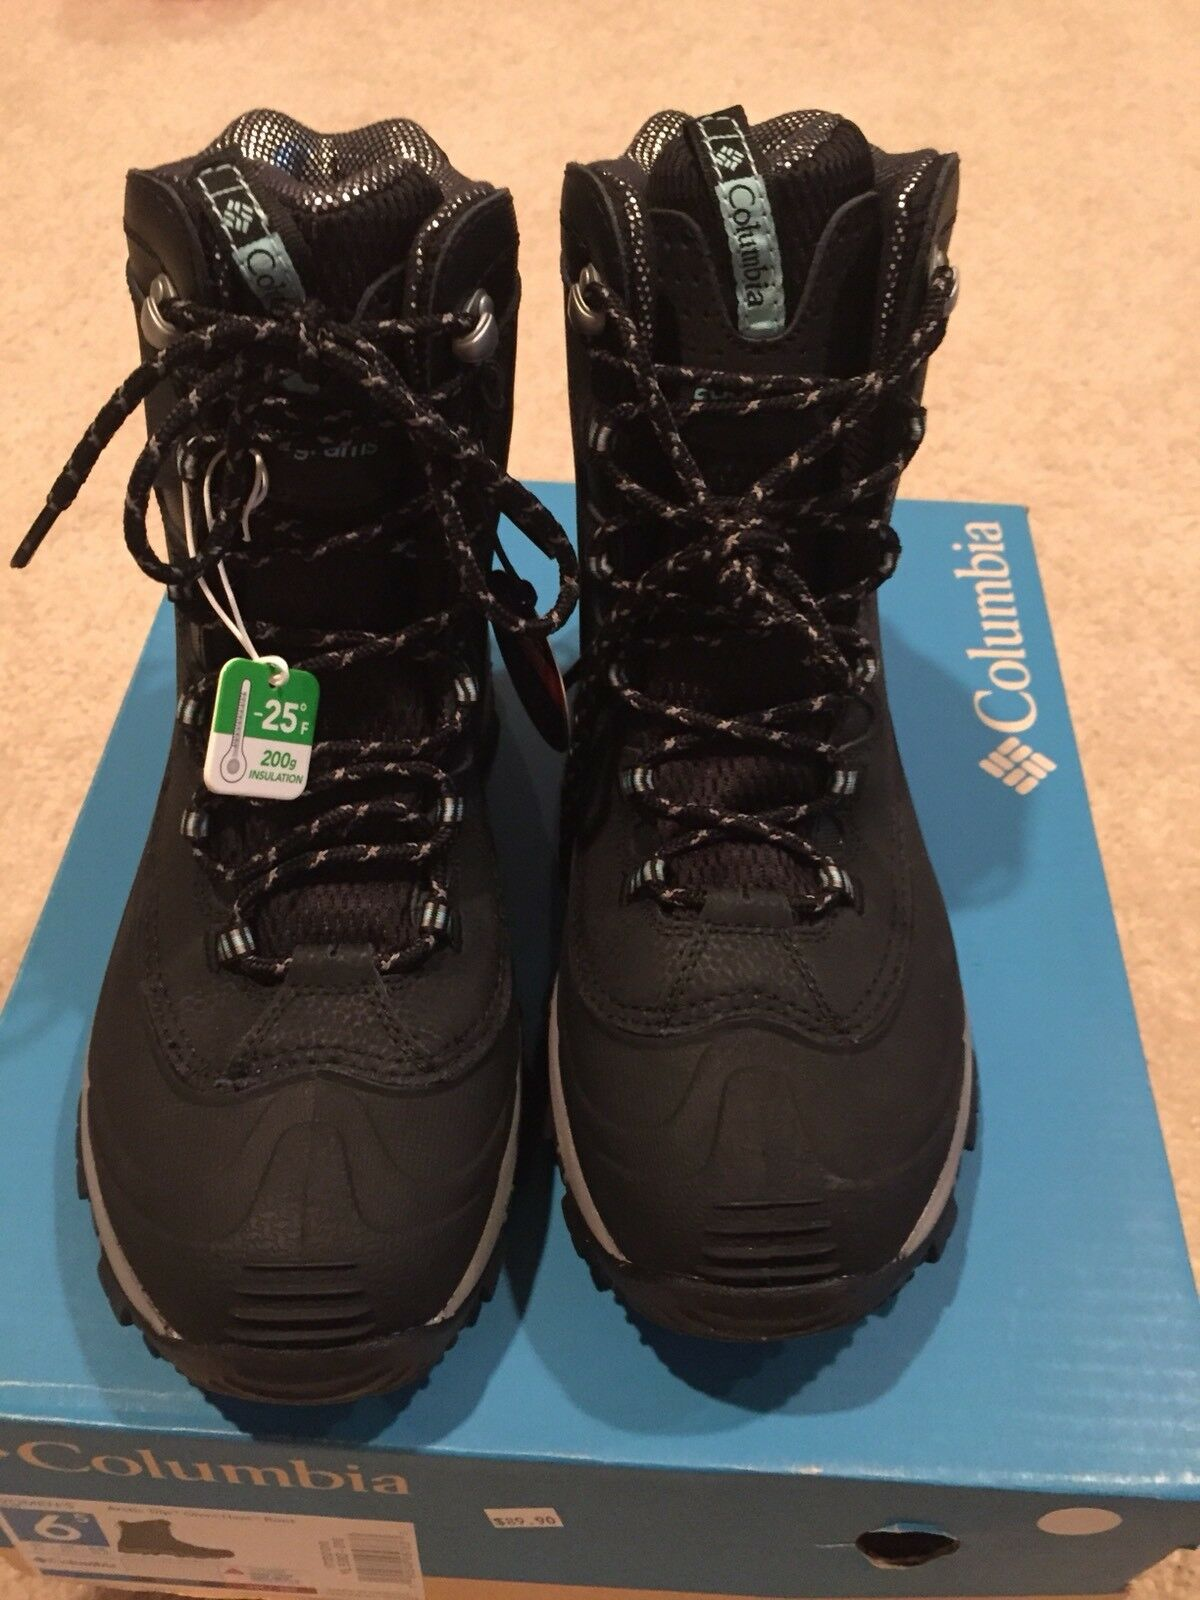 COLUMBIA ARCTIC TRIP OMNI-HEAT WOMEN'S WATERPROOF SNOW SKI BOOTS MSRP